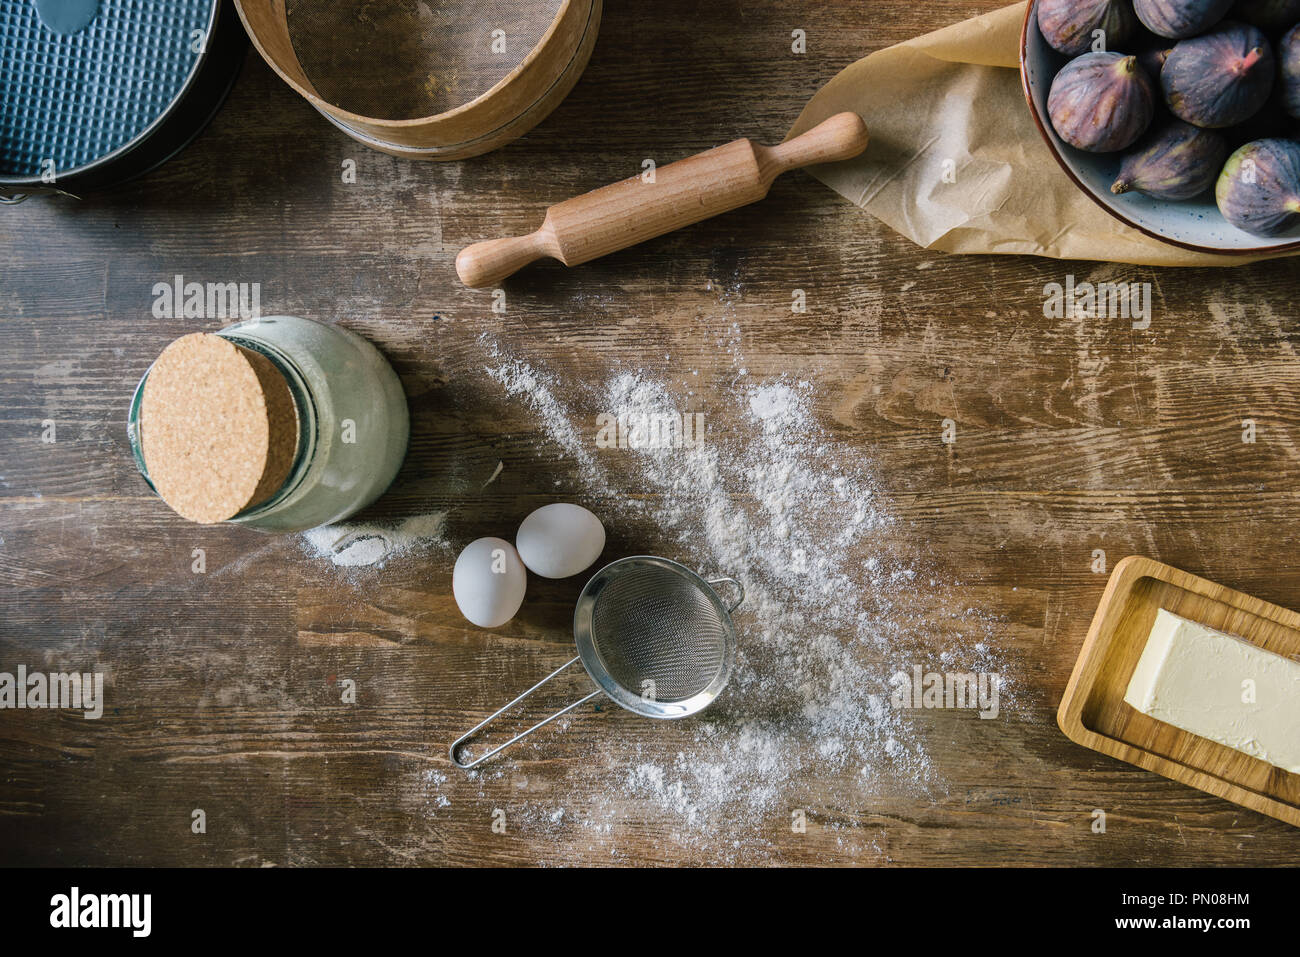 top view of messy wooden table with spilled flour and baking ingredients Stock Photo